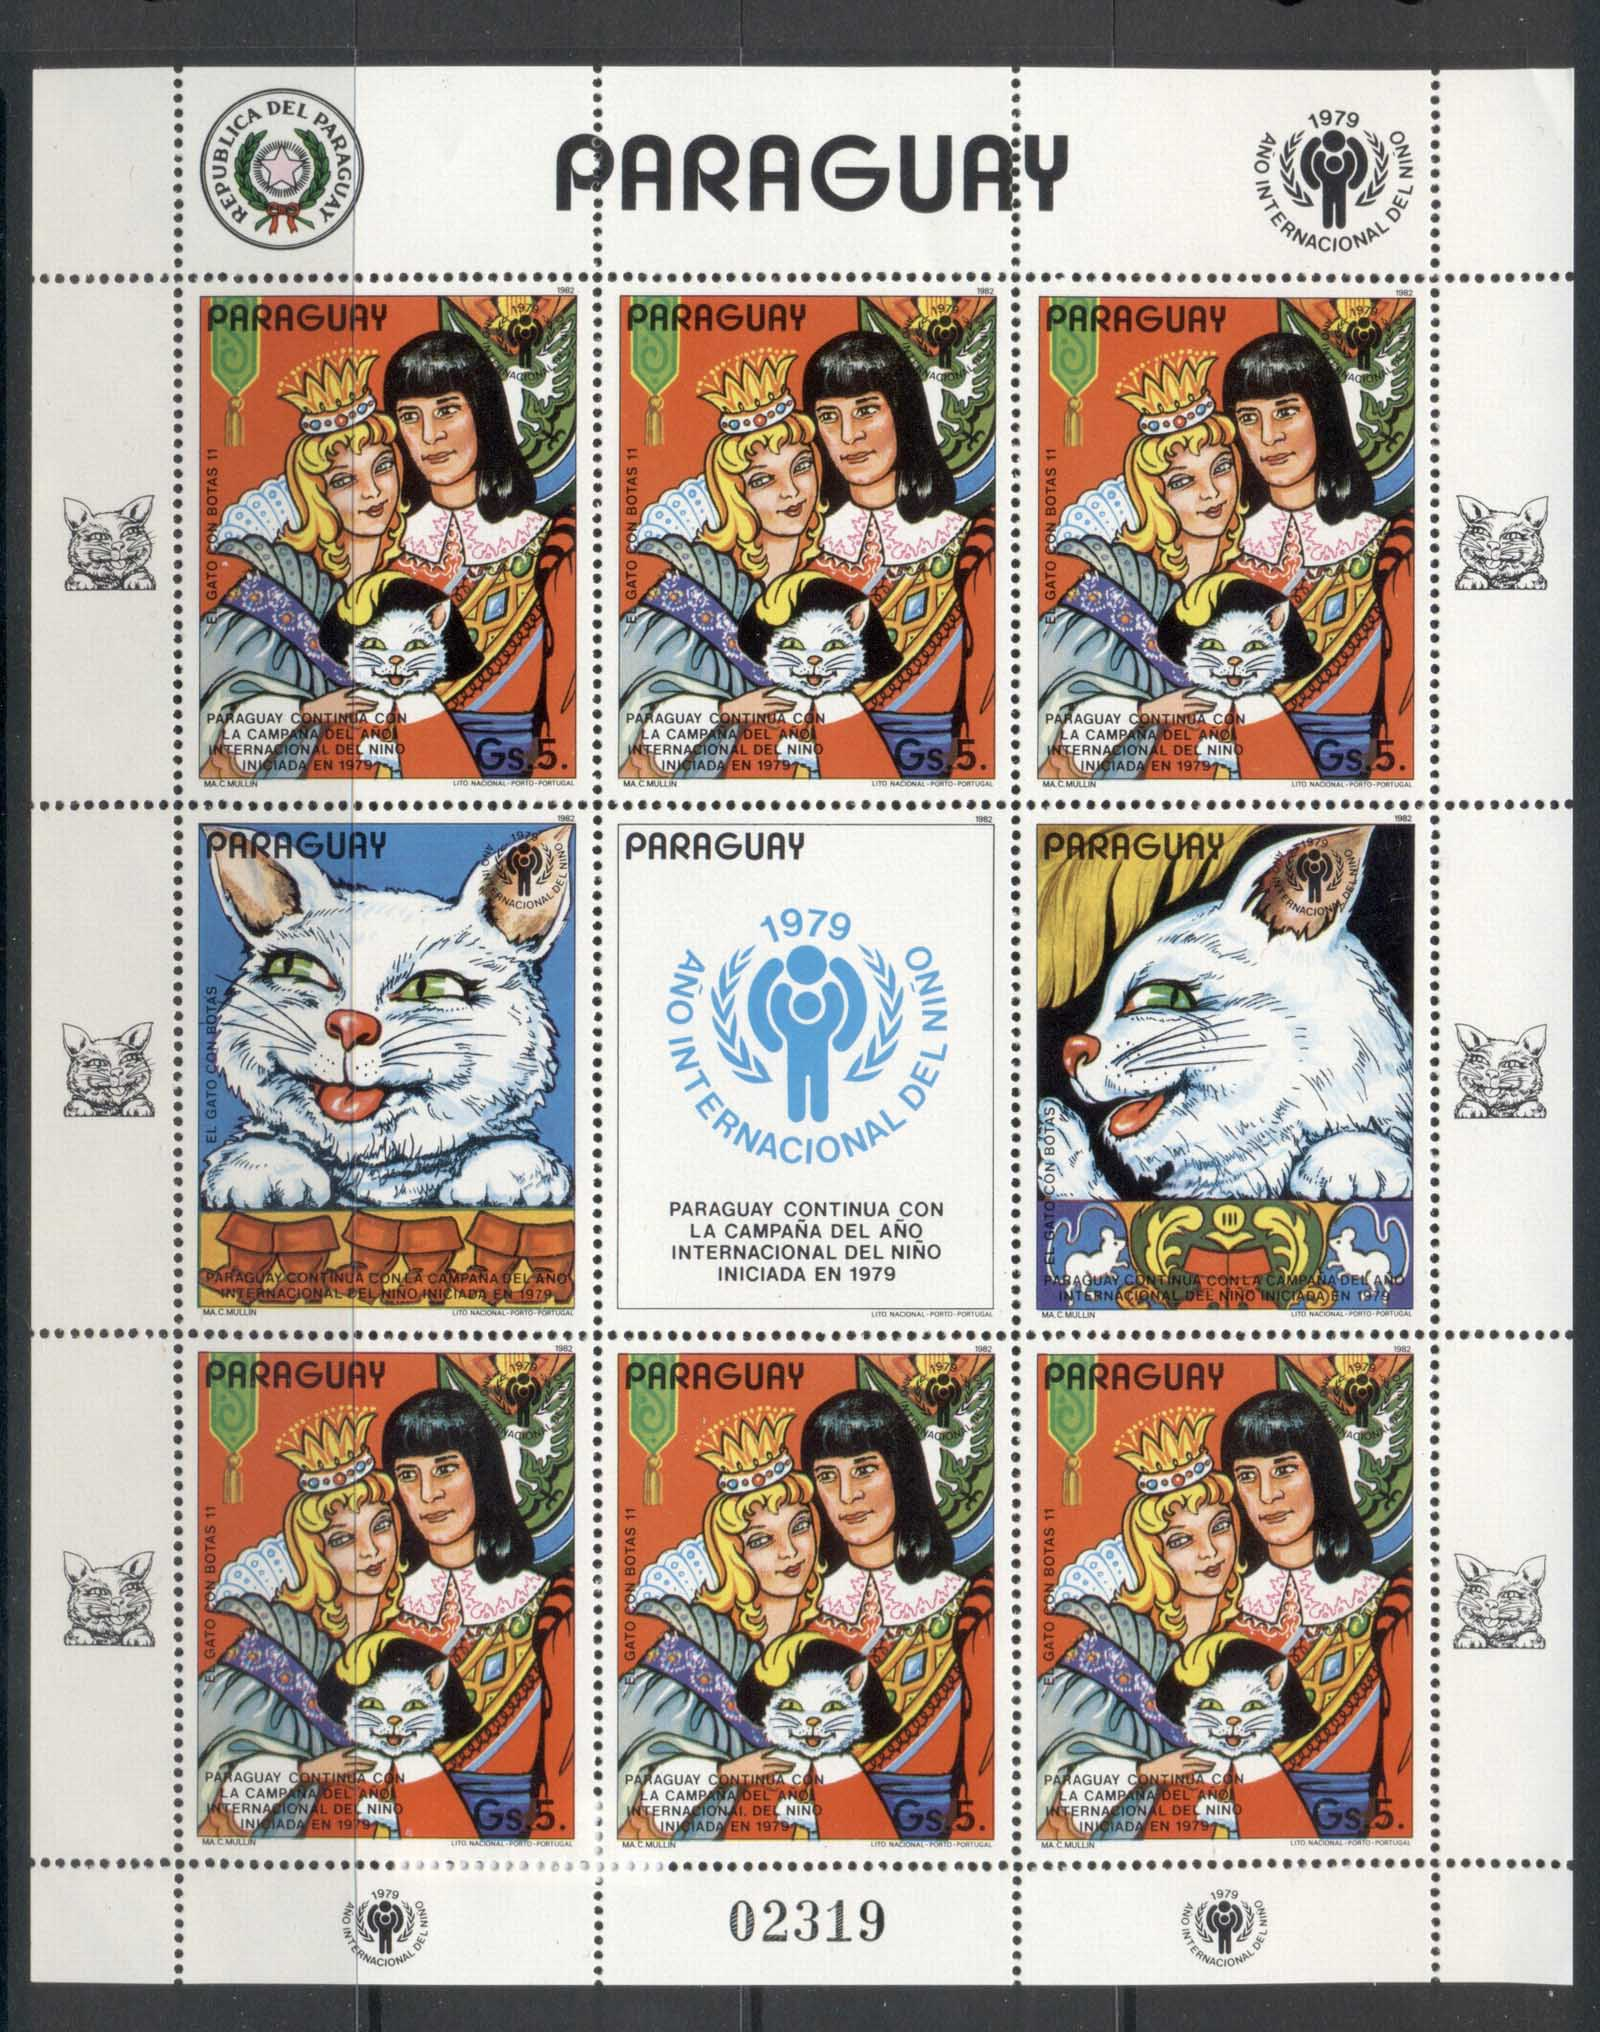 Paraguay 1979 IYC International year of the Child, Puss in Boots sheetlet MUH